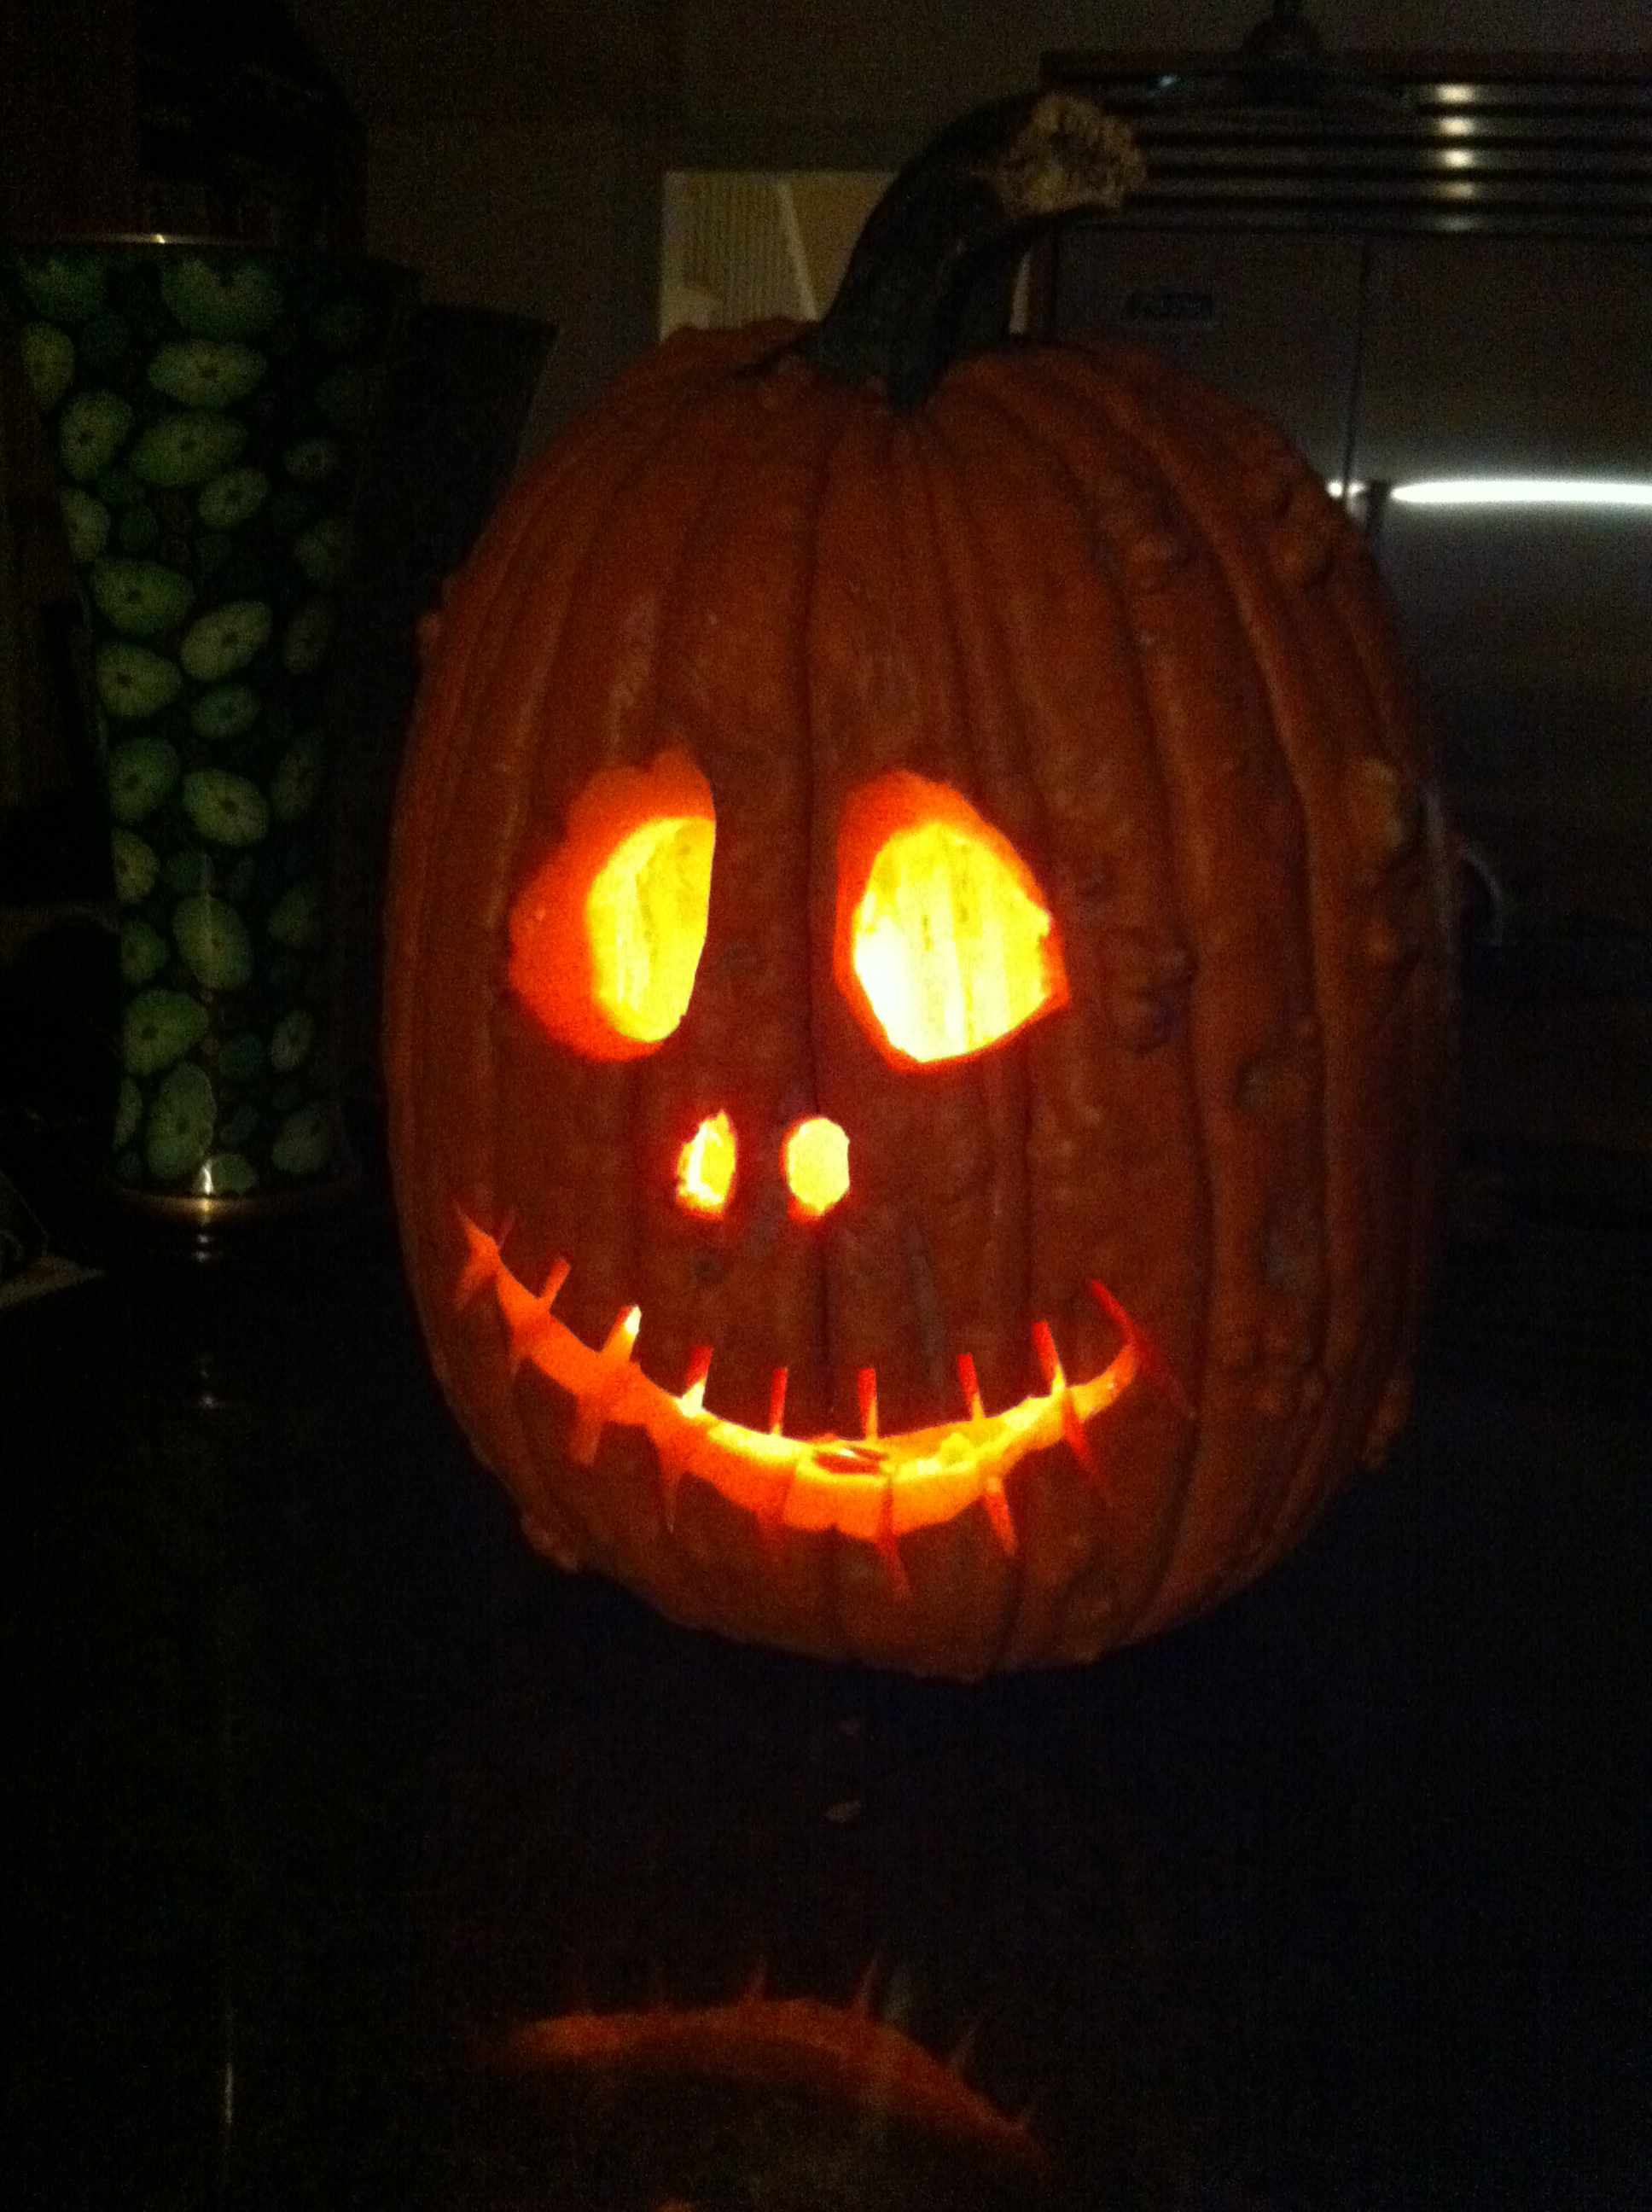 This jack-o-lantern is one of our best over.